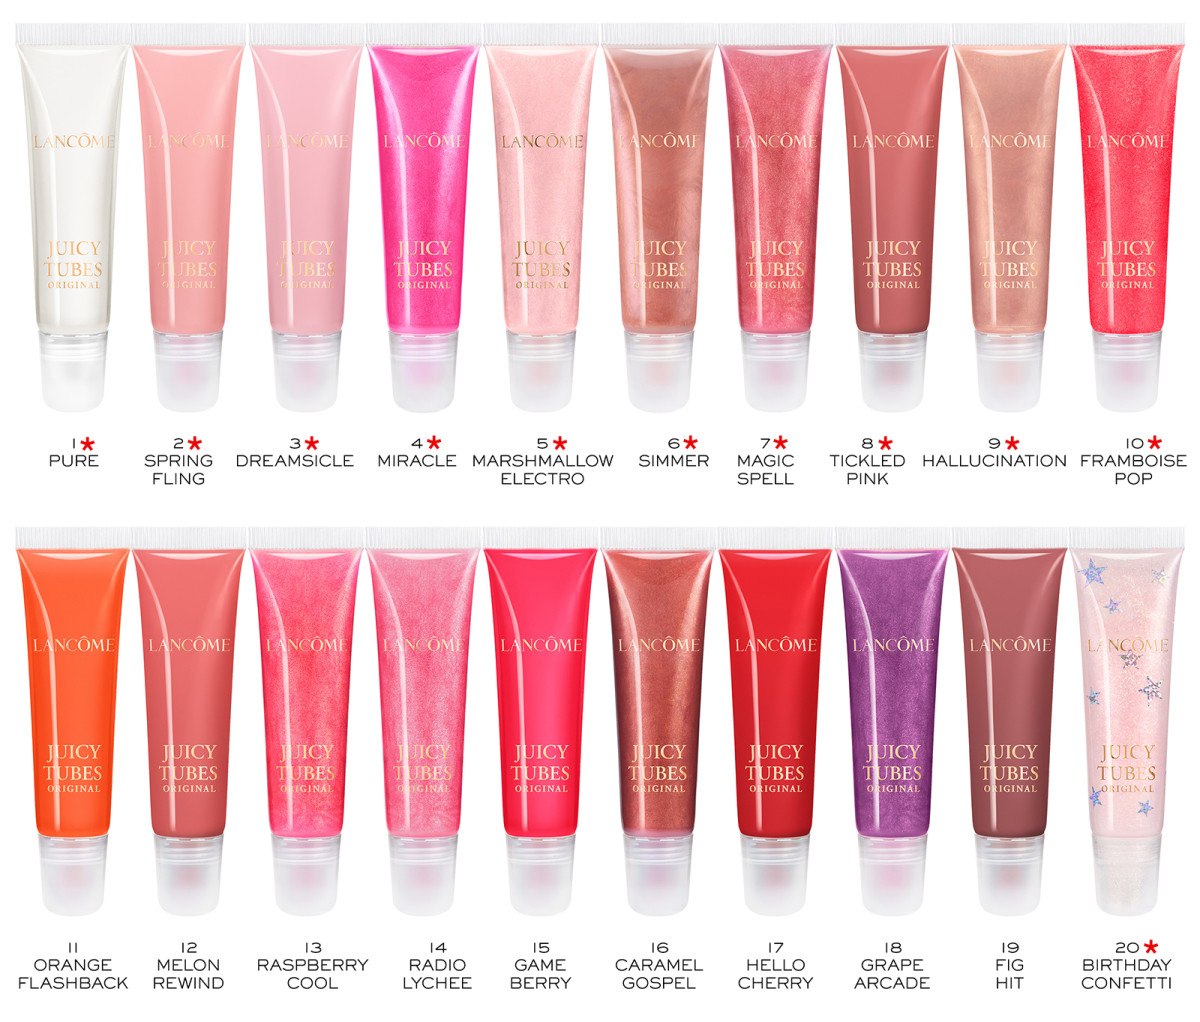 Lancôme Juicy Tubes 2020: all available in the USA; starred shades are available in Canada.